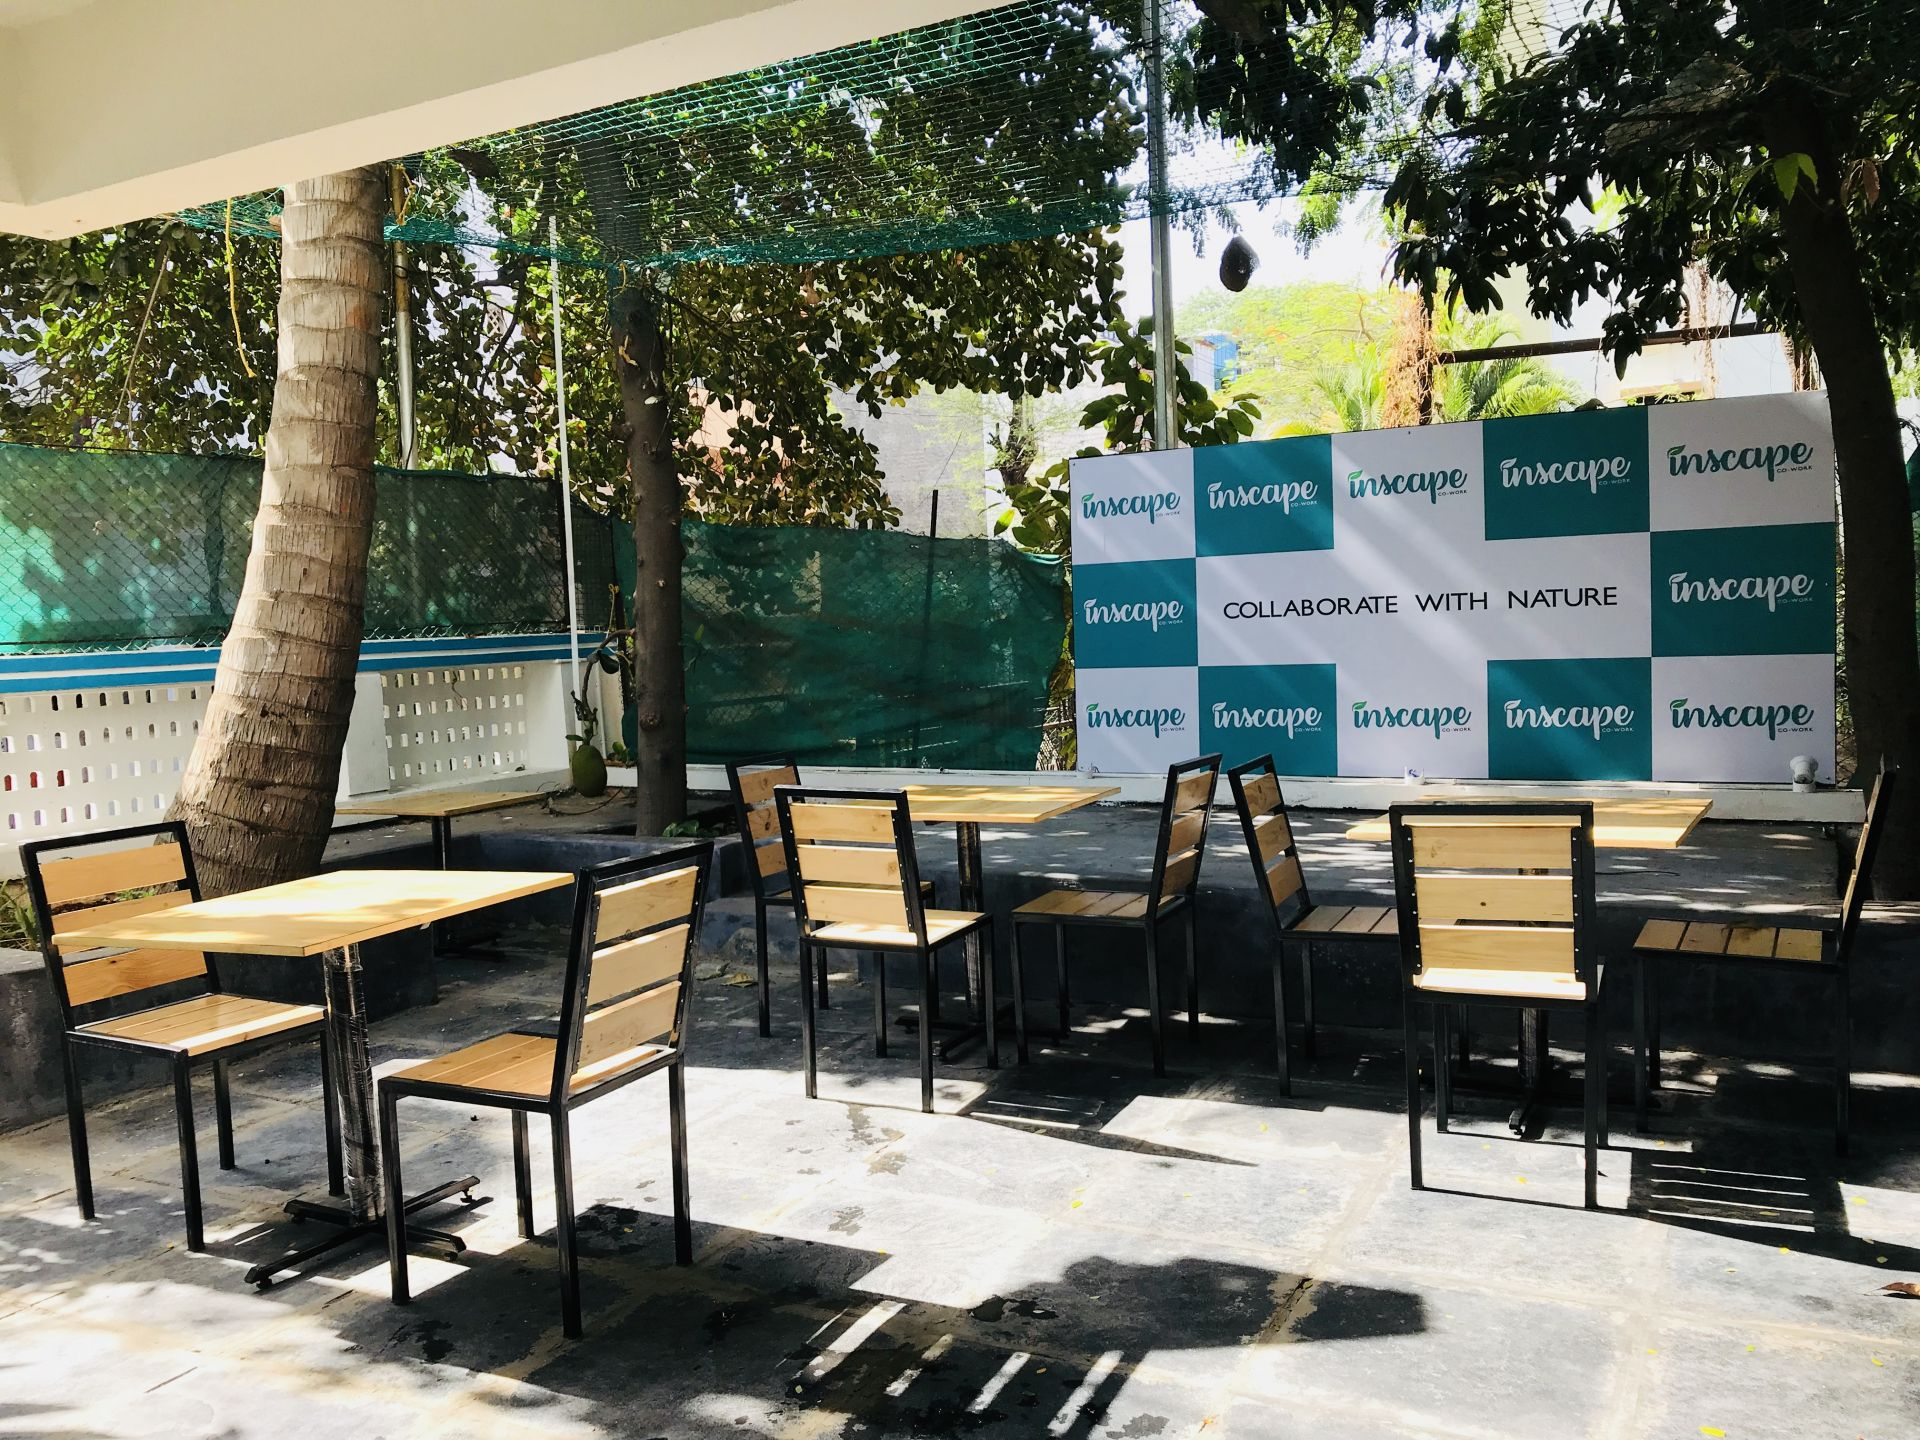 Inscape Cowork, Pune